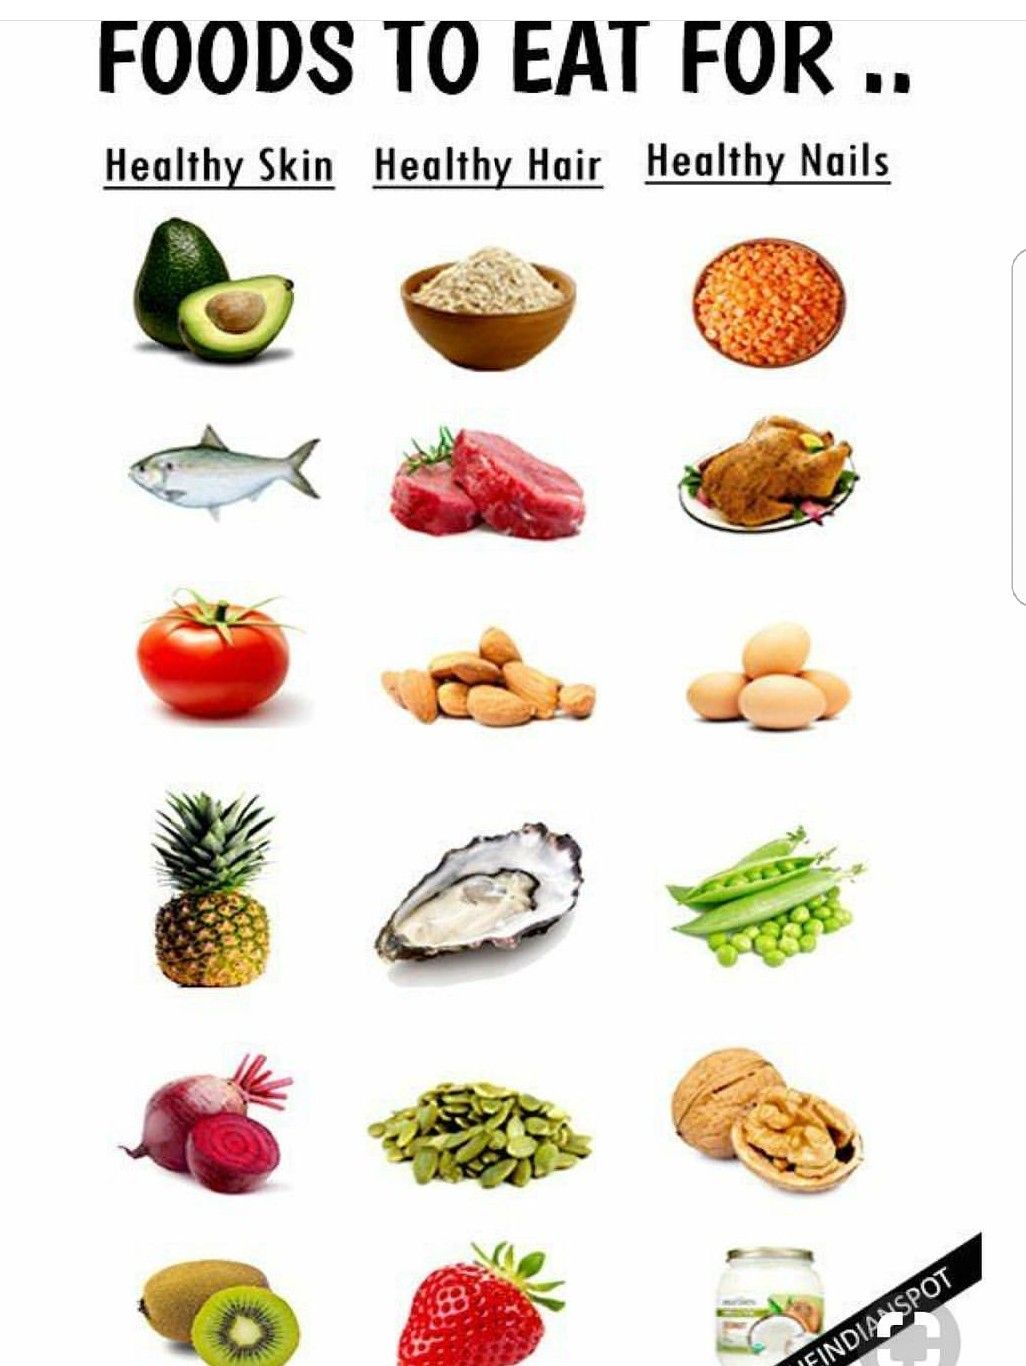 Food For Heathy Skin Hairs And Nails Healthy Nutrition Healthy Recipes